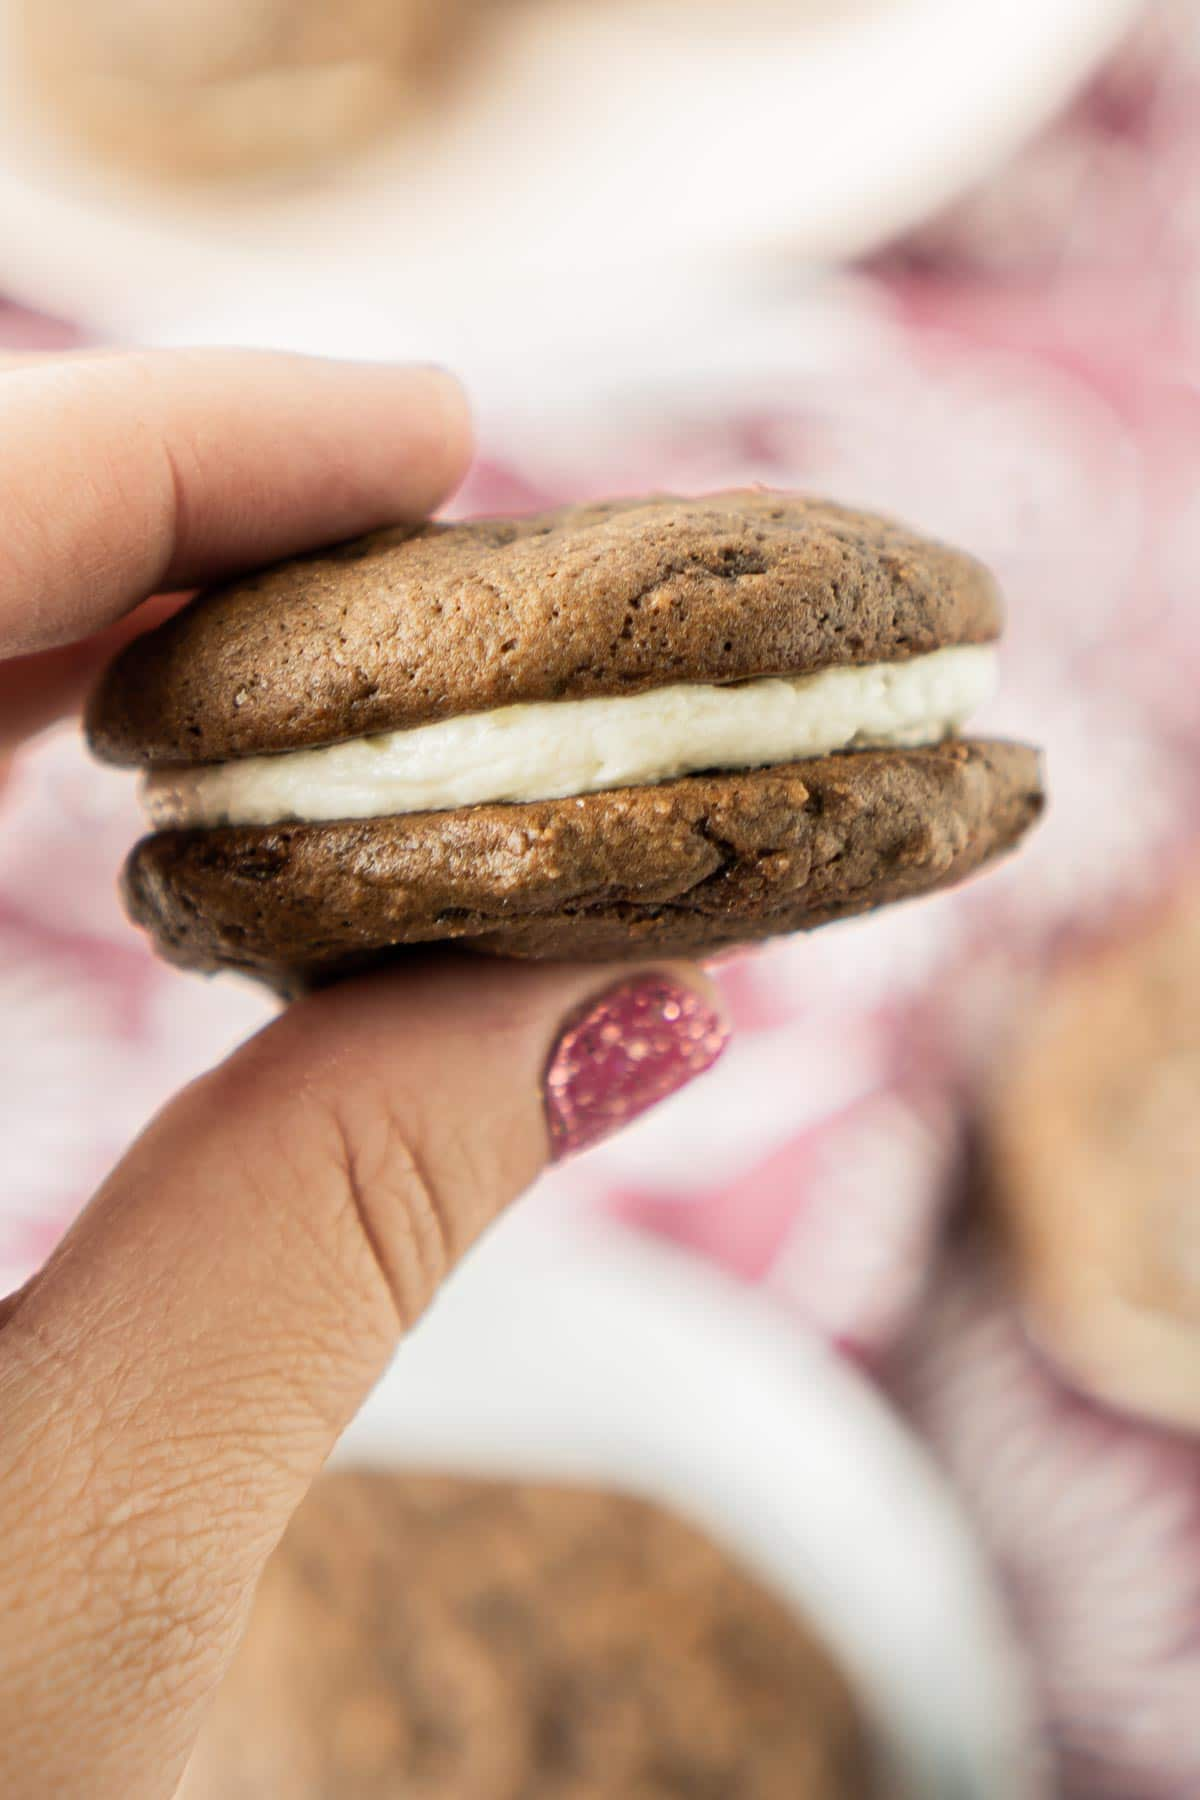 Hand holding a chocolate whoopie pie